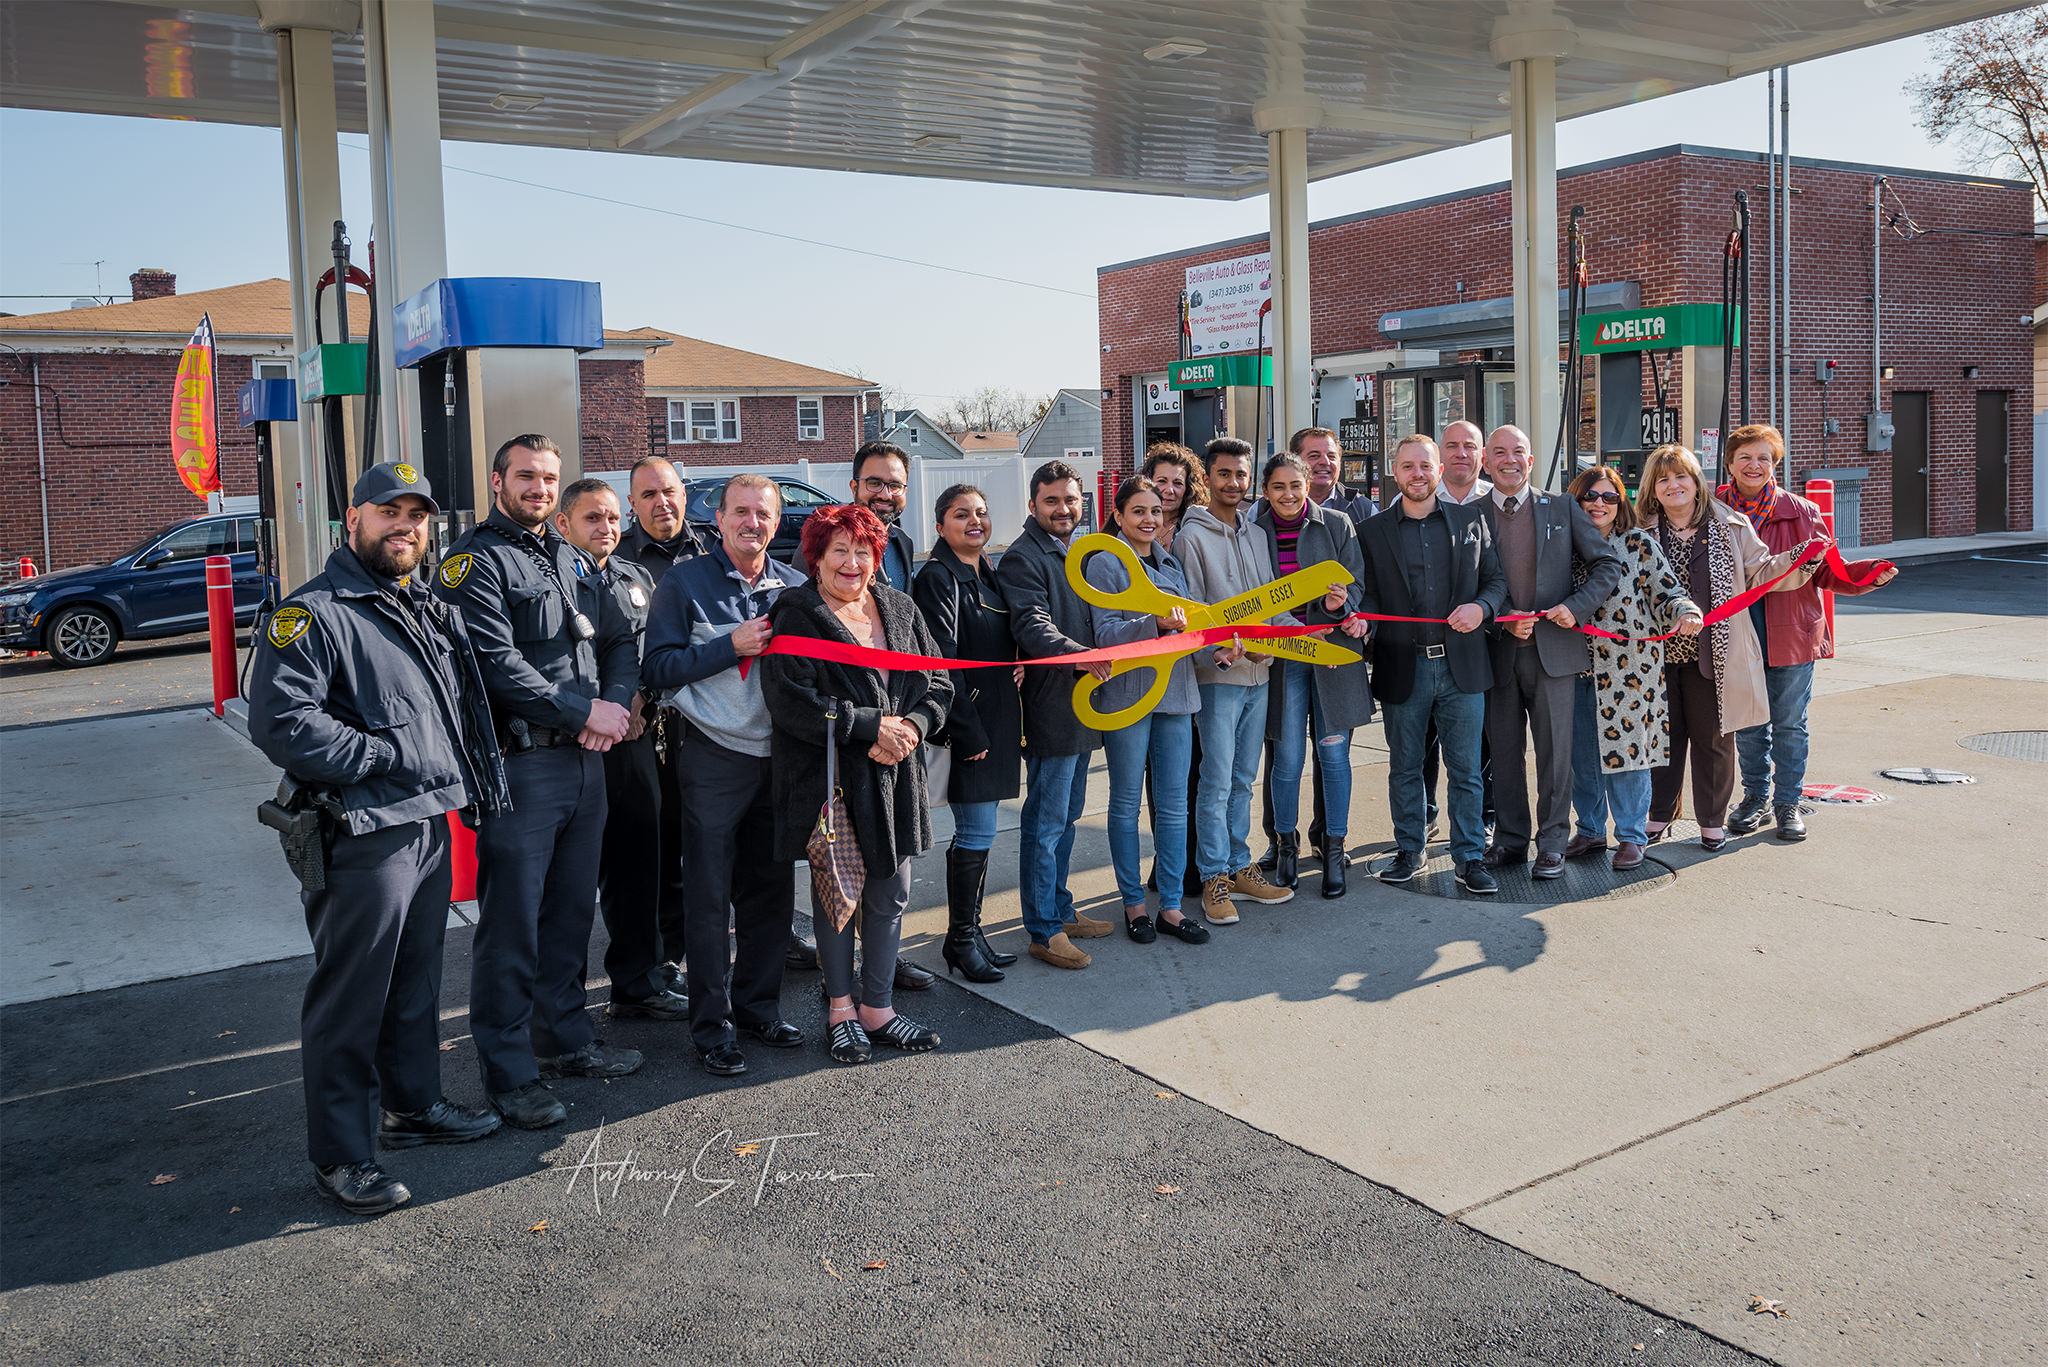 Congratulations Delta Fuel and Welcome to our Community